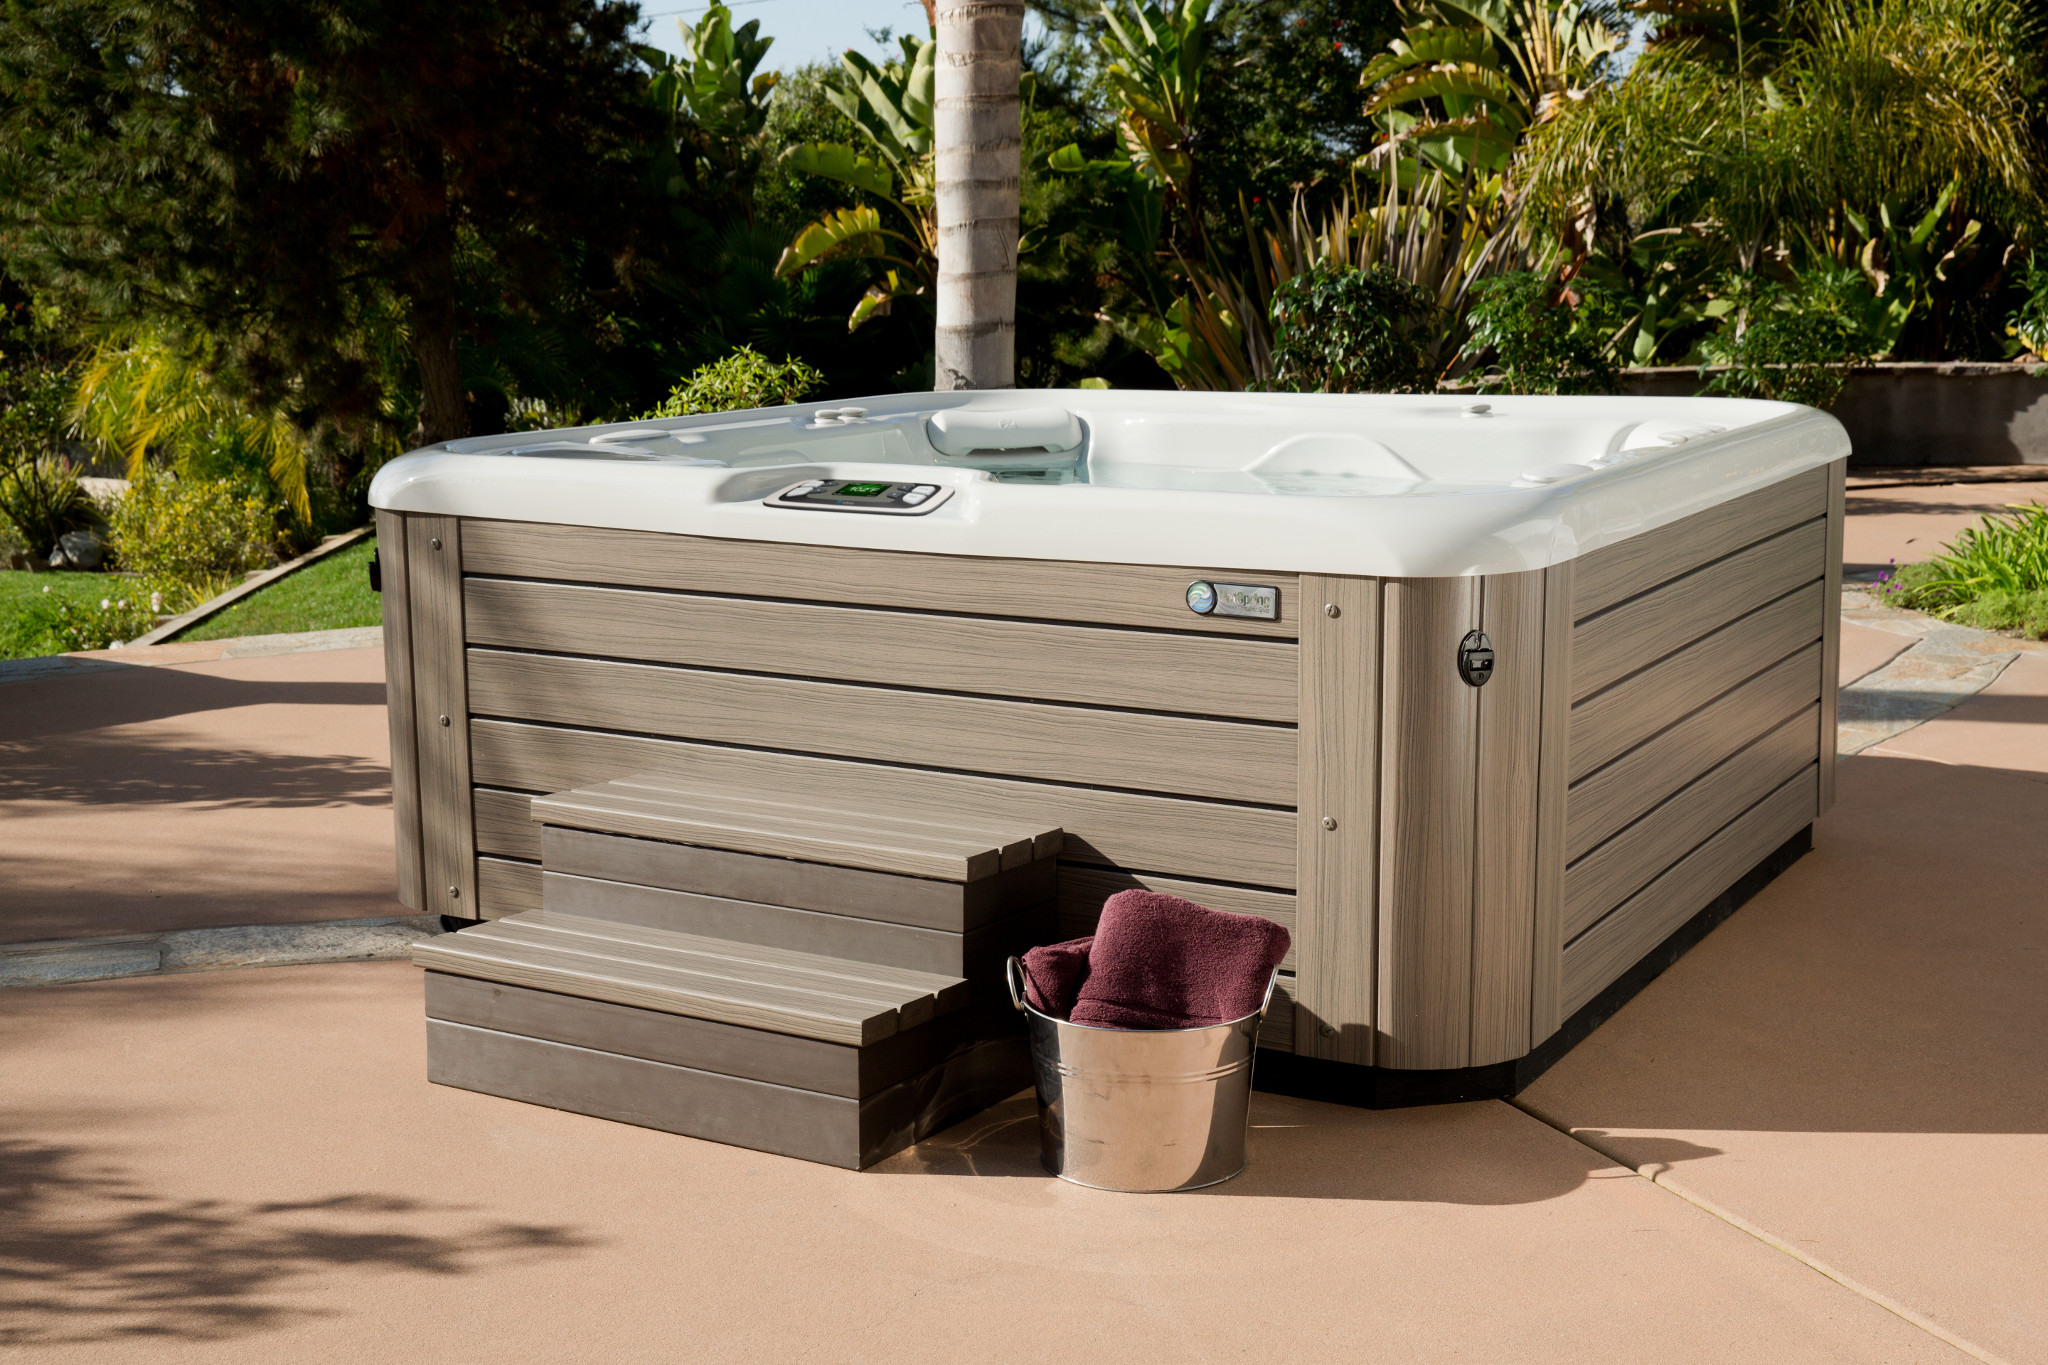 What to Know Before Moving a Hot Tub?